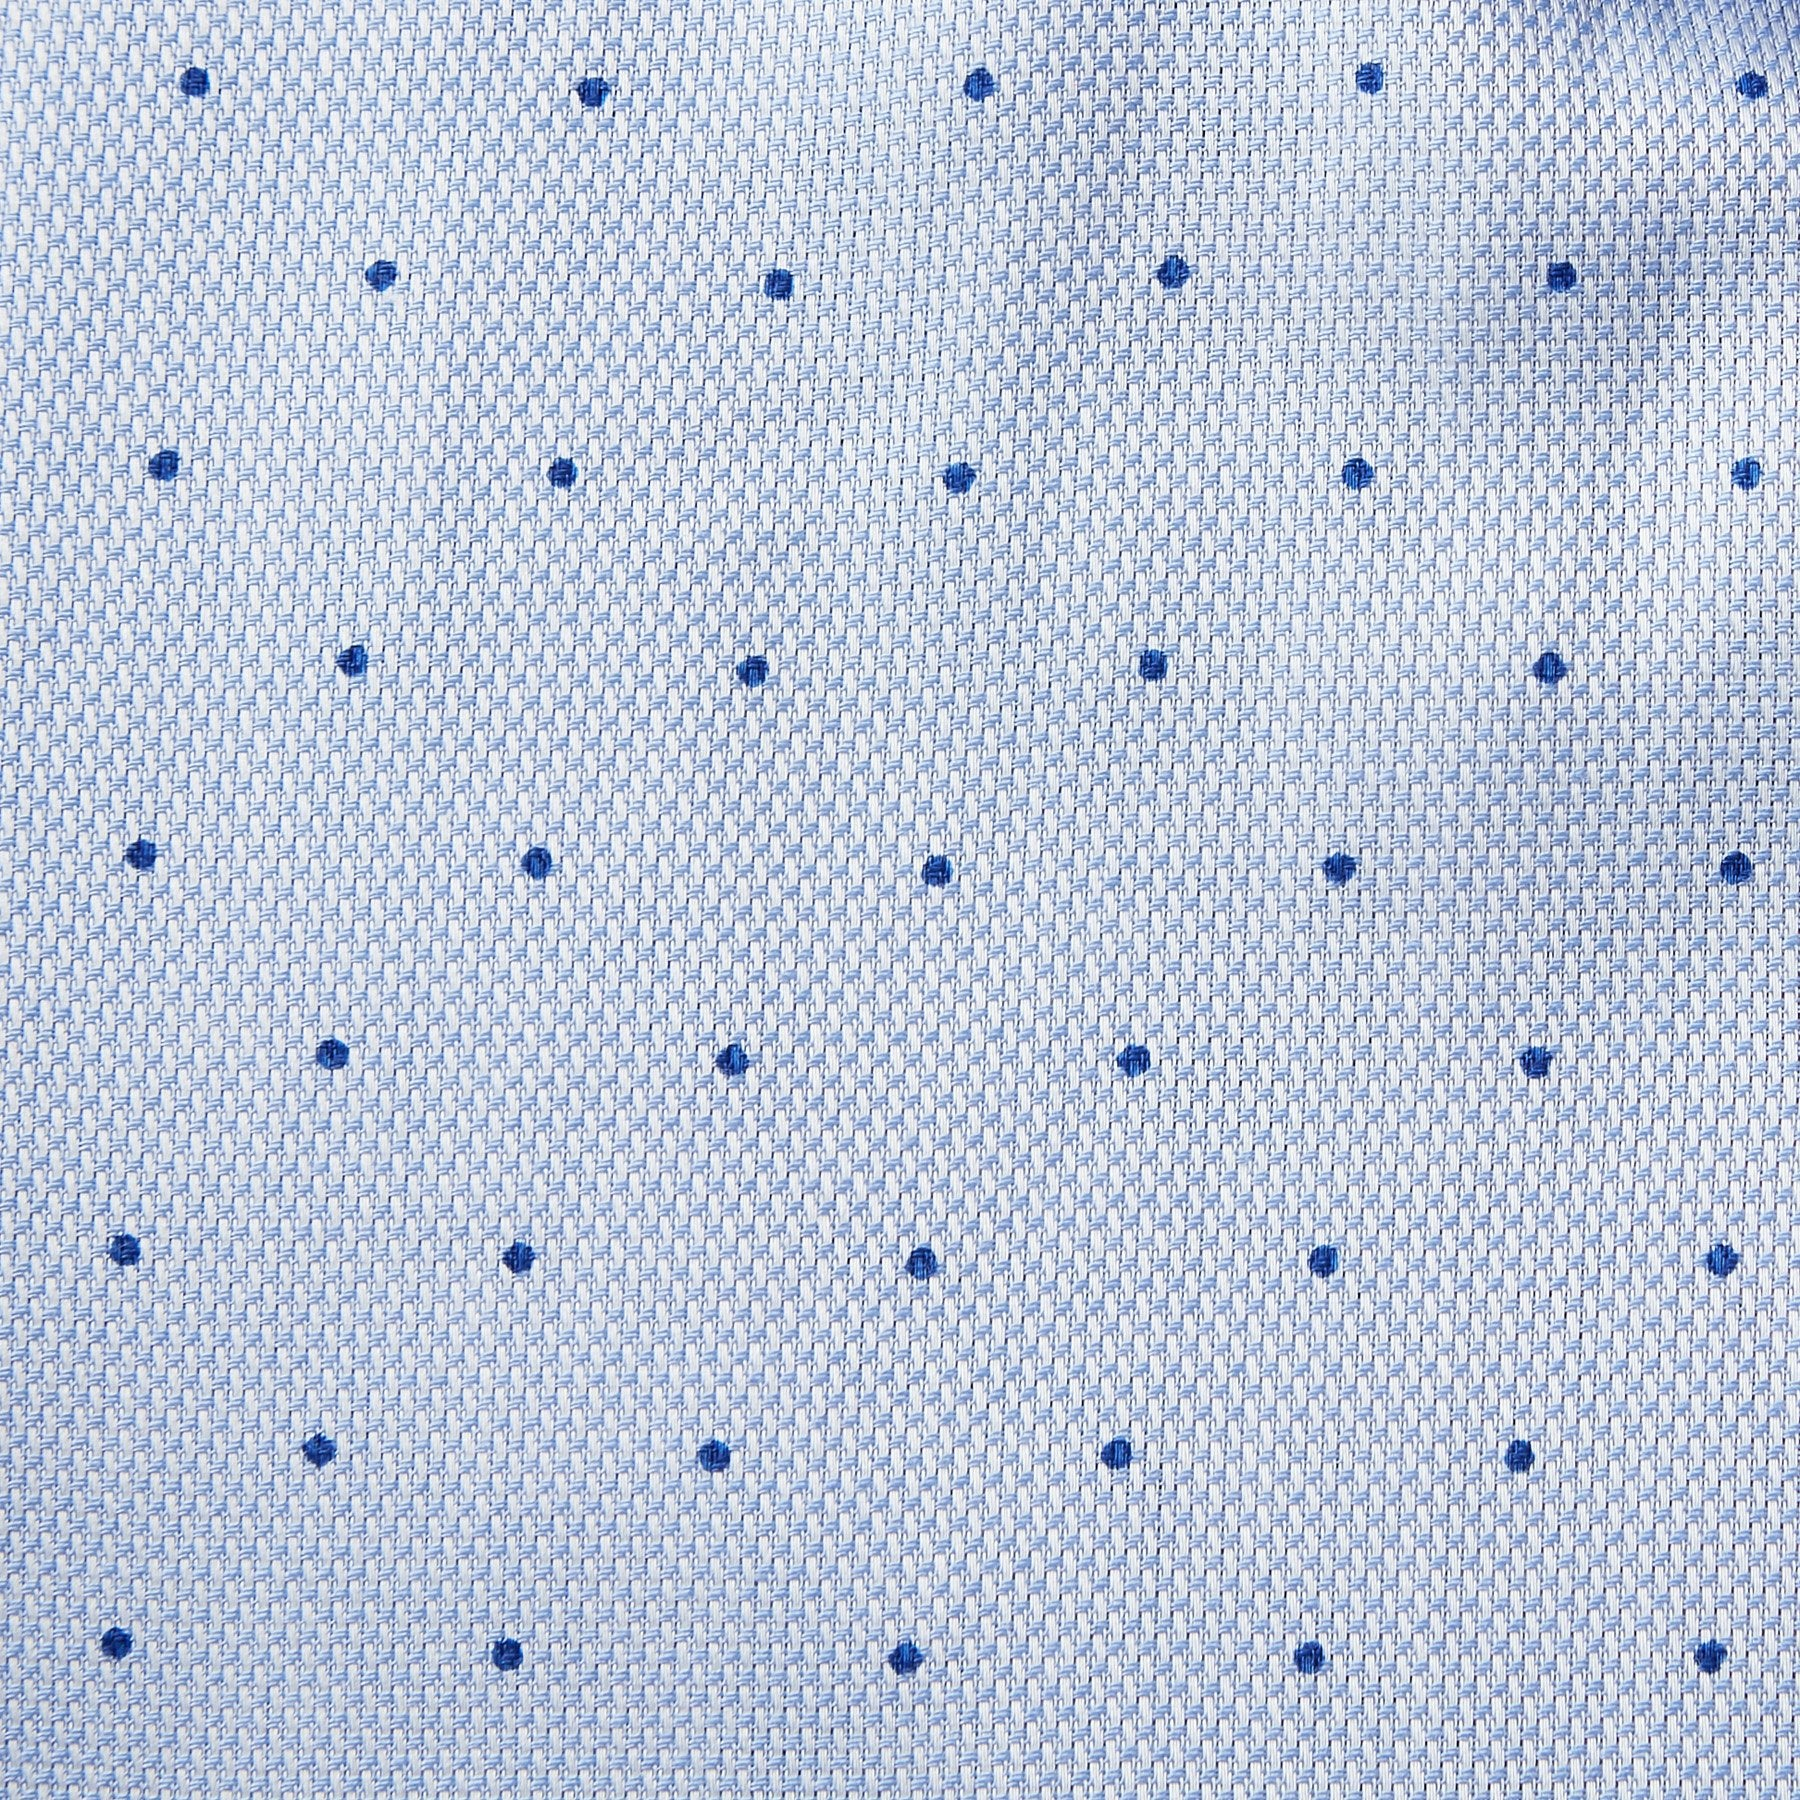 4851-Rael-Brook-Tailored-Fit-Blue-Polka-Dot-Single-Cuff-Shirt-4